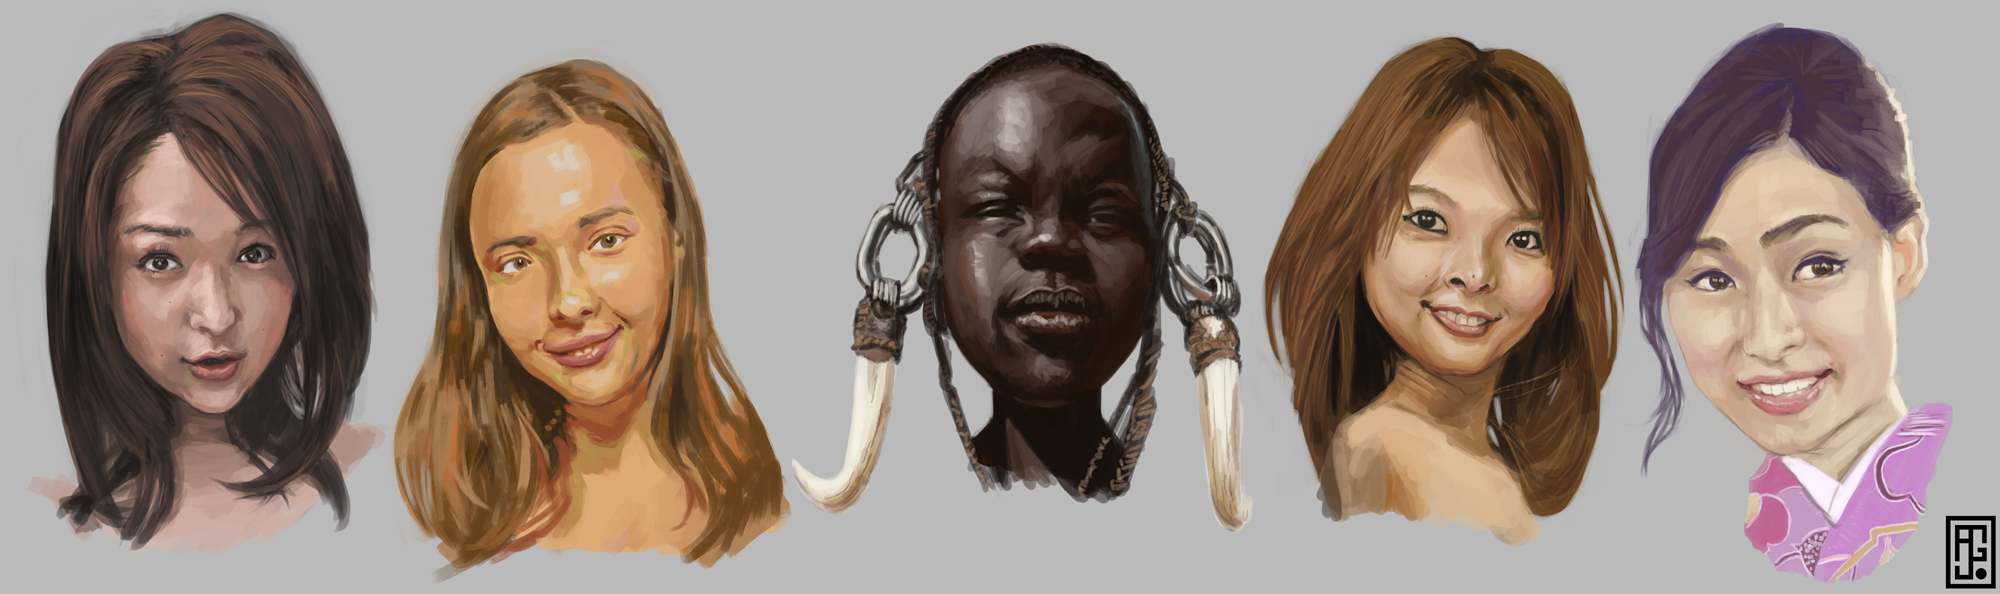 [Image: female_head_studies_by_xelfereht-d8gmxne.jpg]